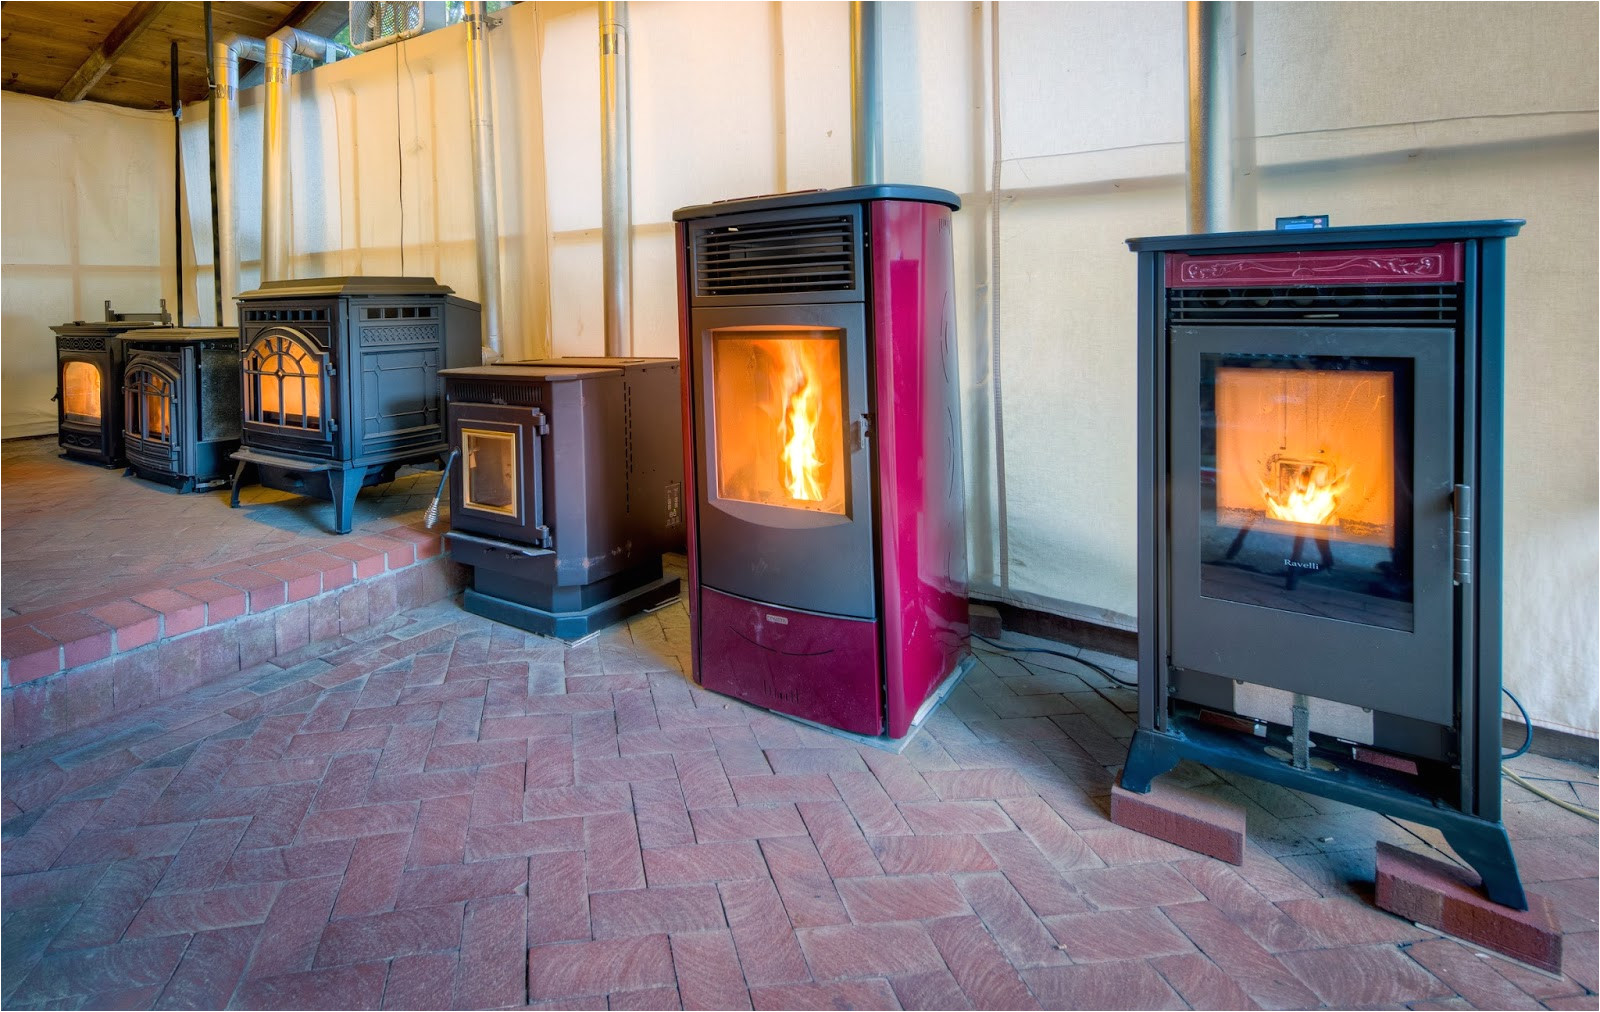 agh tested six popular pellet stoves almost all performed well during intensive 30 day testing but did not live up to some manufacturer claims